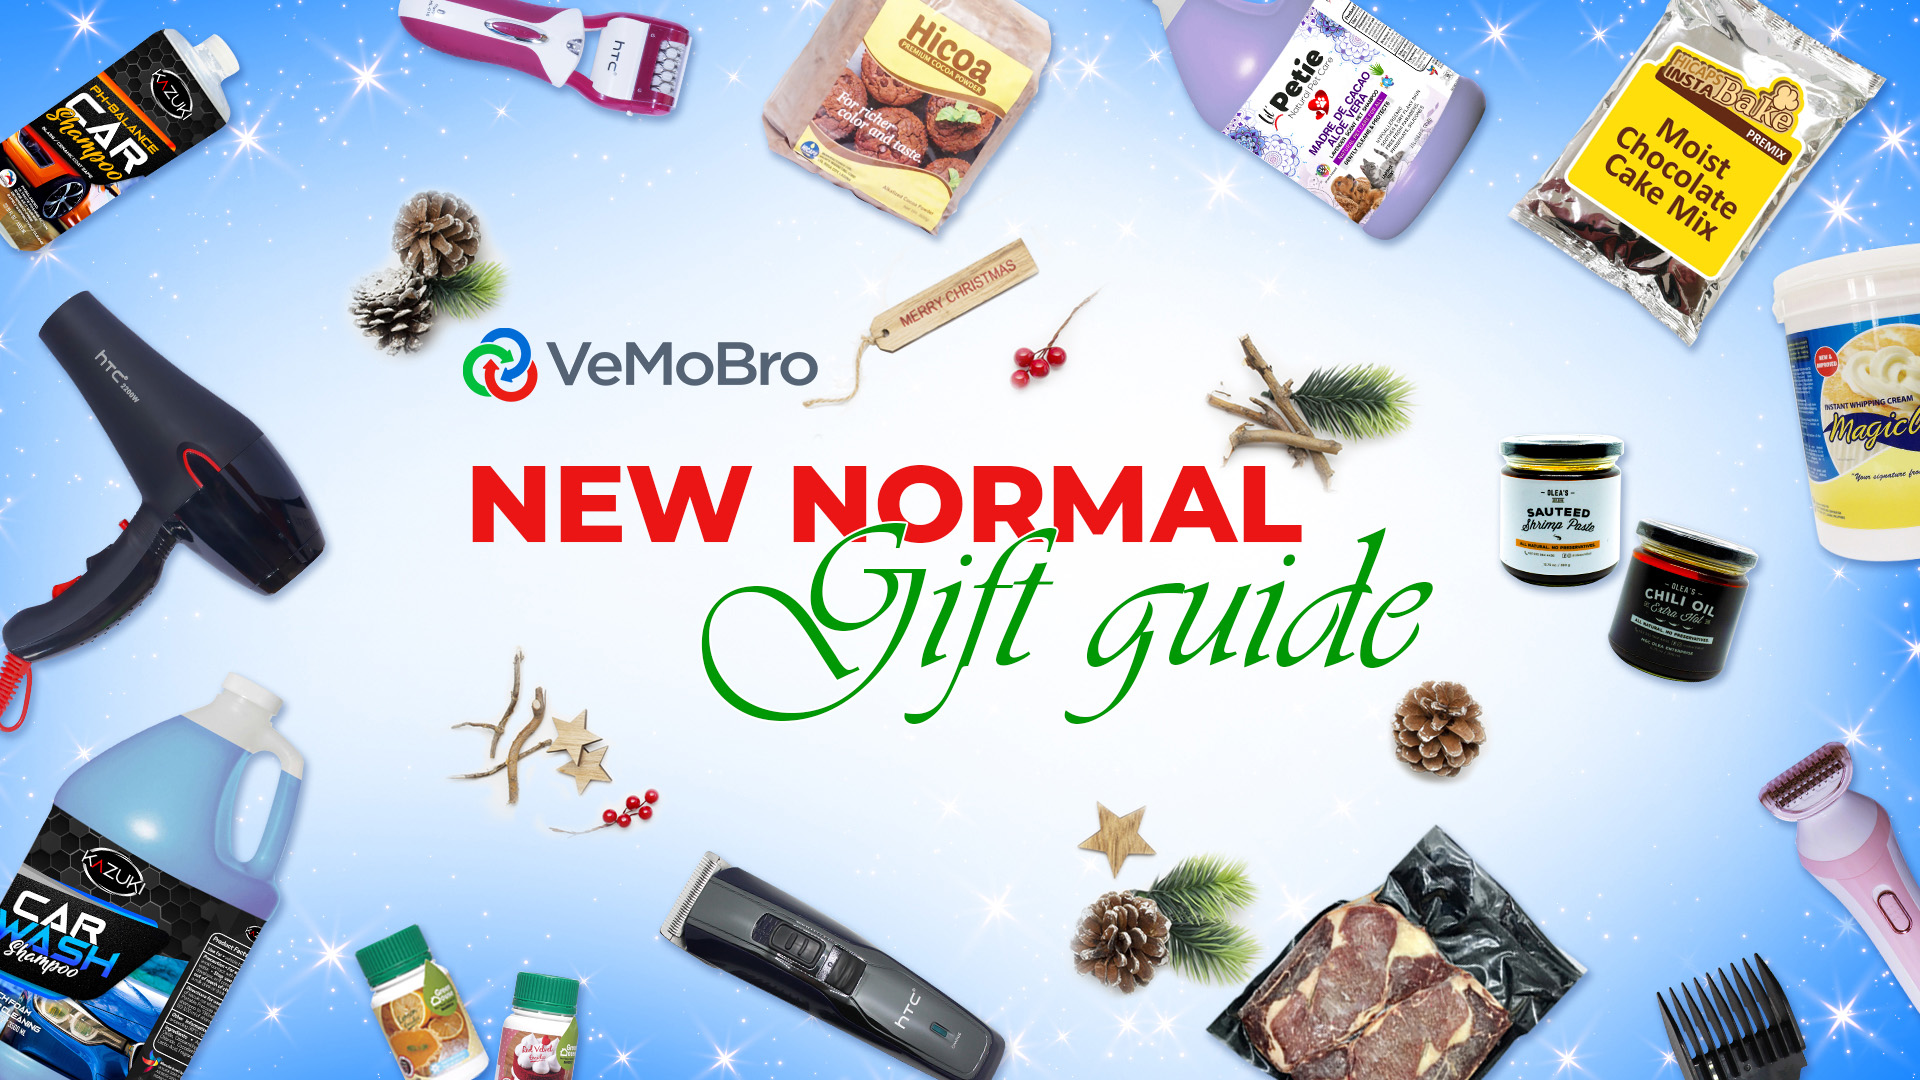 Gift Giving this Christmas is a Go: Here's VeMoBro's Gift Guide for the New Normal